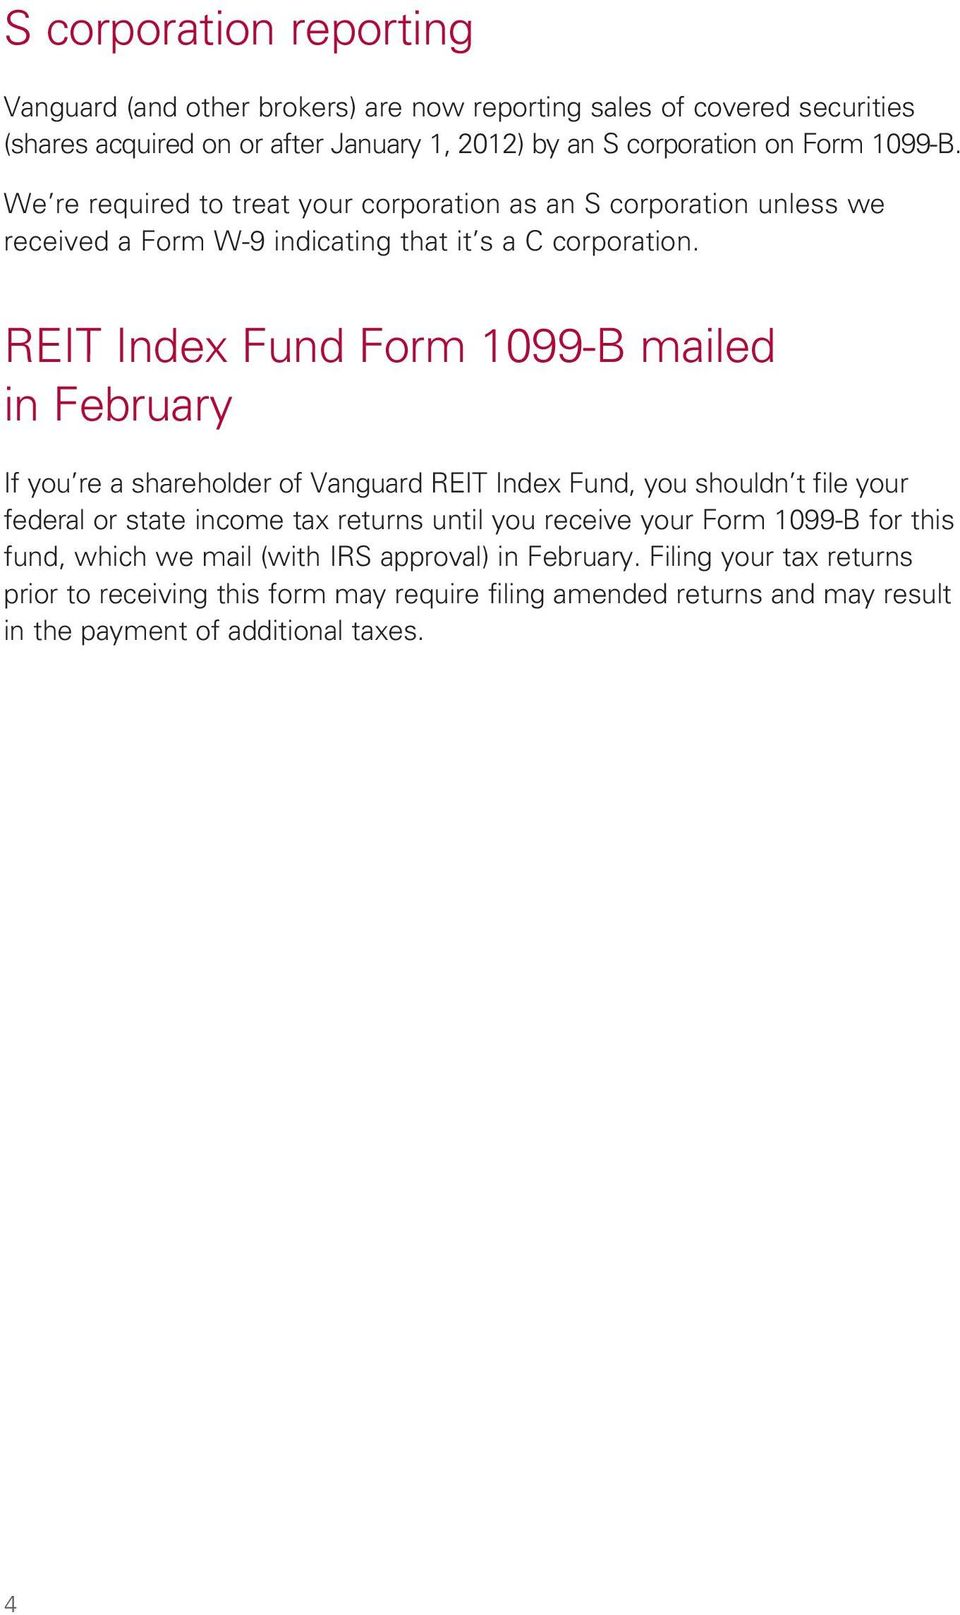 REIT Index Fund Form 1099-B mailed in February If you re a shareholder of Vanguard REIT Index Fund, you shouldn t file your federal or state income tax returns until you